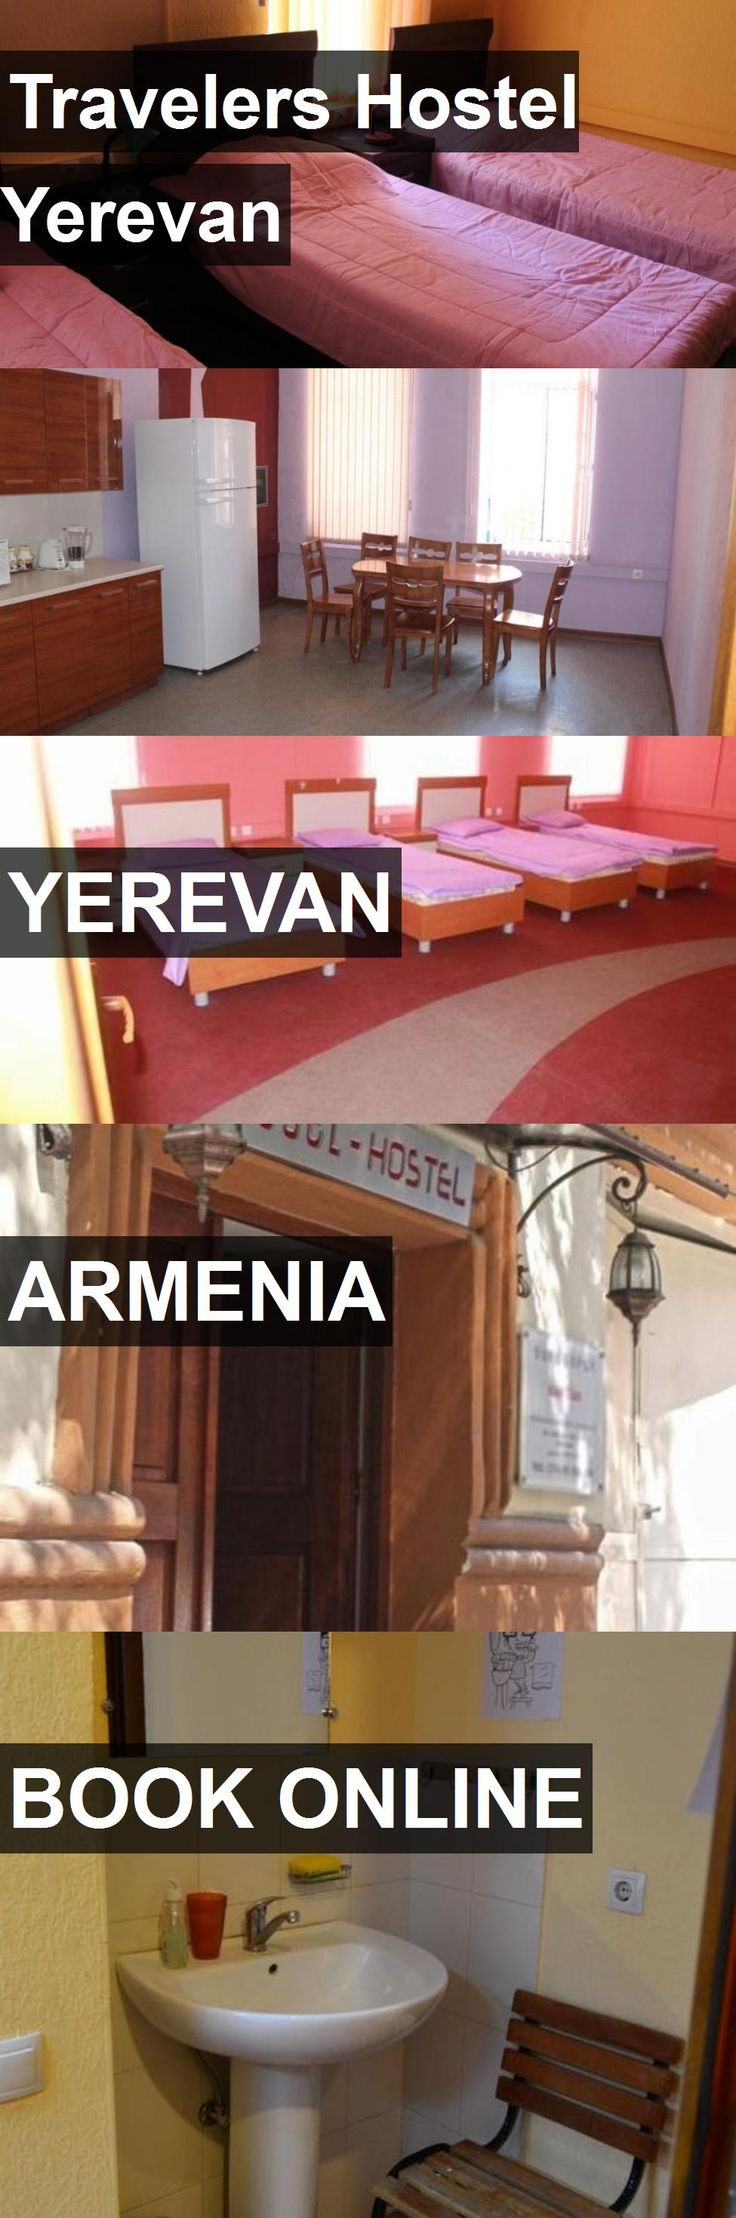 Travelers Hostel Yerevan in Yerevan, Armenia. For more information, photos, reviews and best prices please follow the link. #Armenia #Yerevan #travel #vacation #hostel